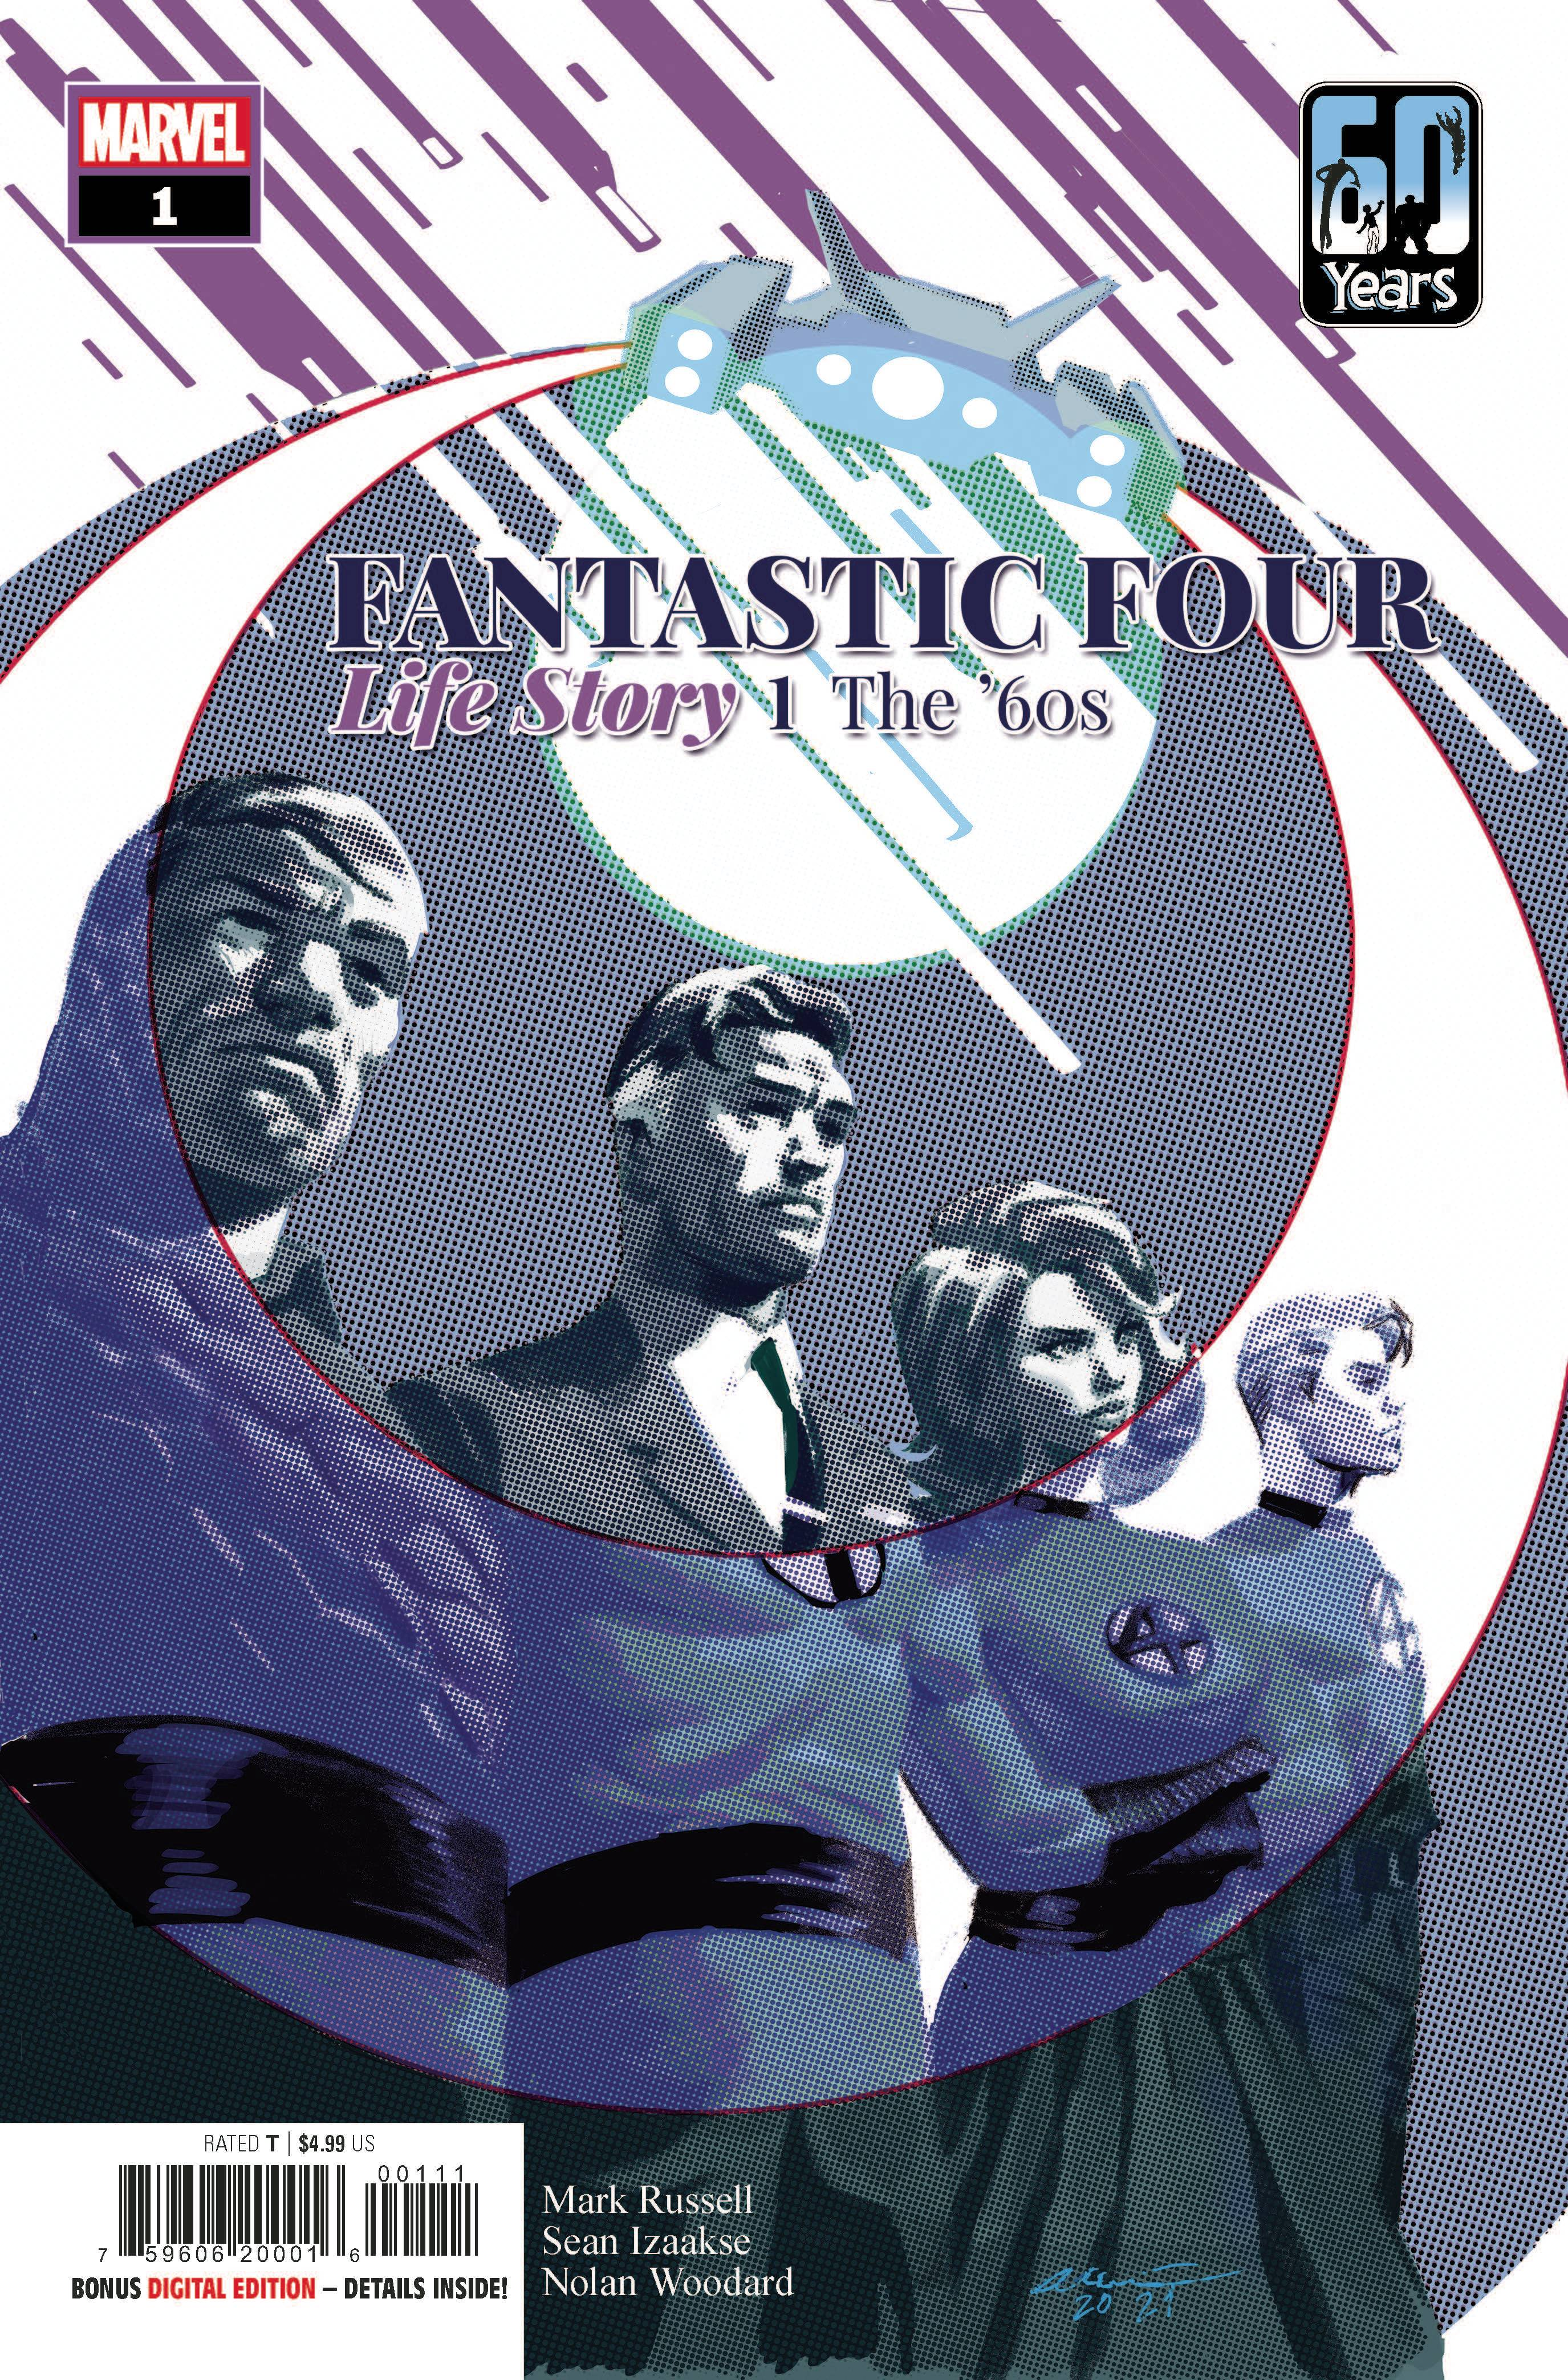 FANTASTIC FOUR LIFE STORY #1 (OF 6)